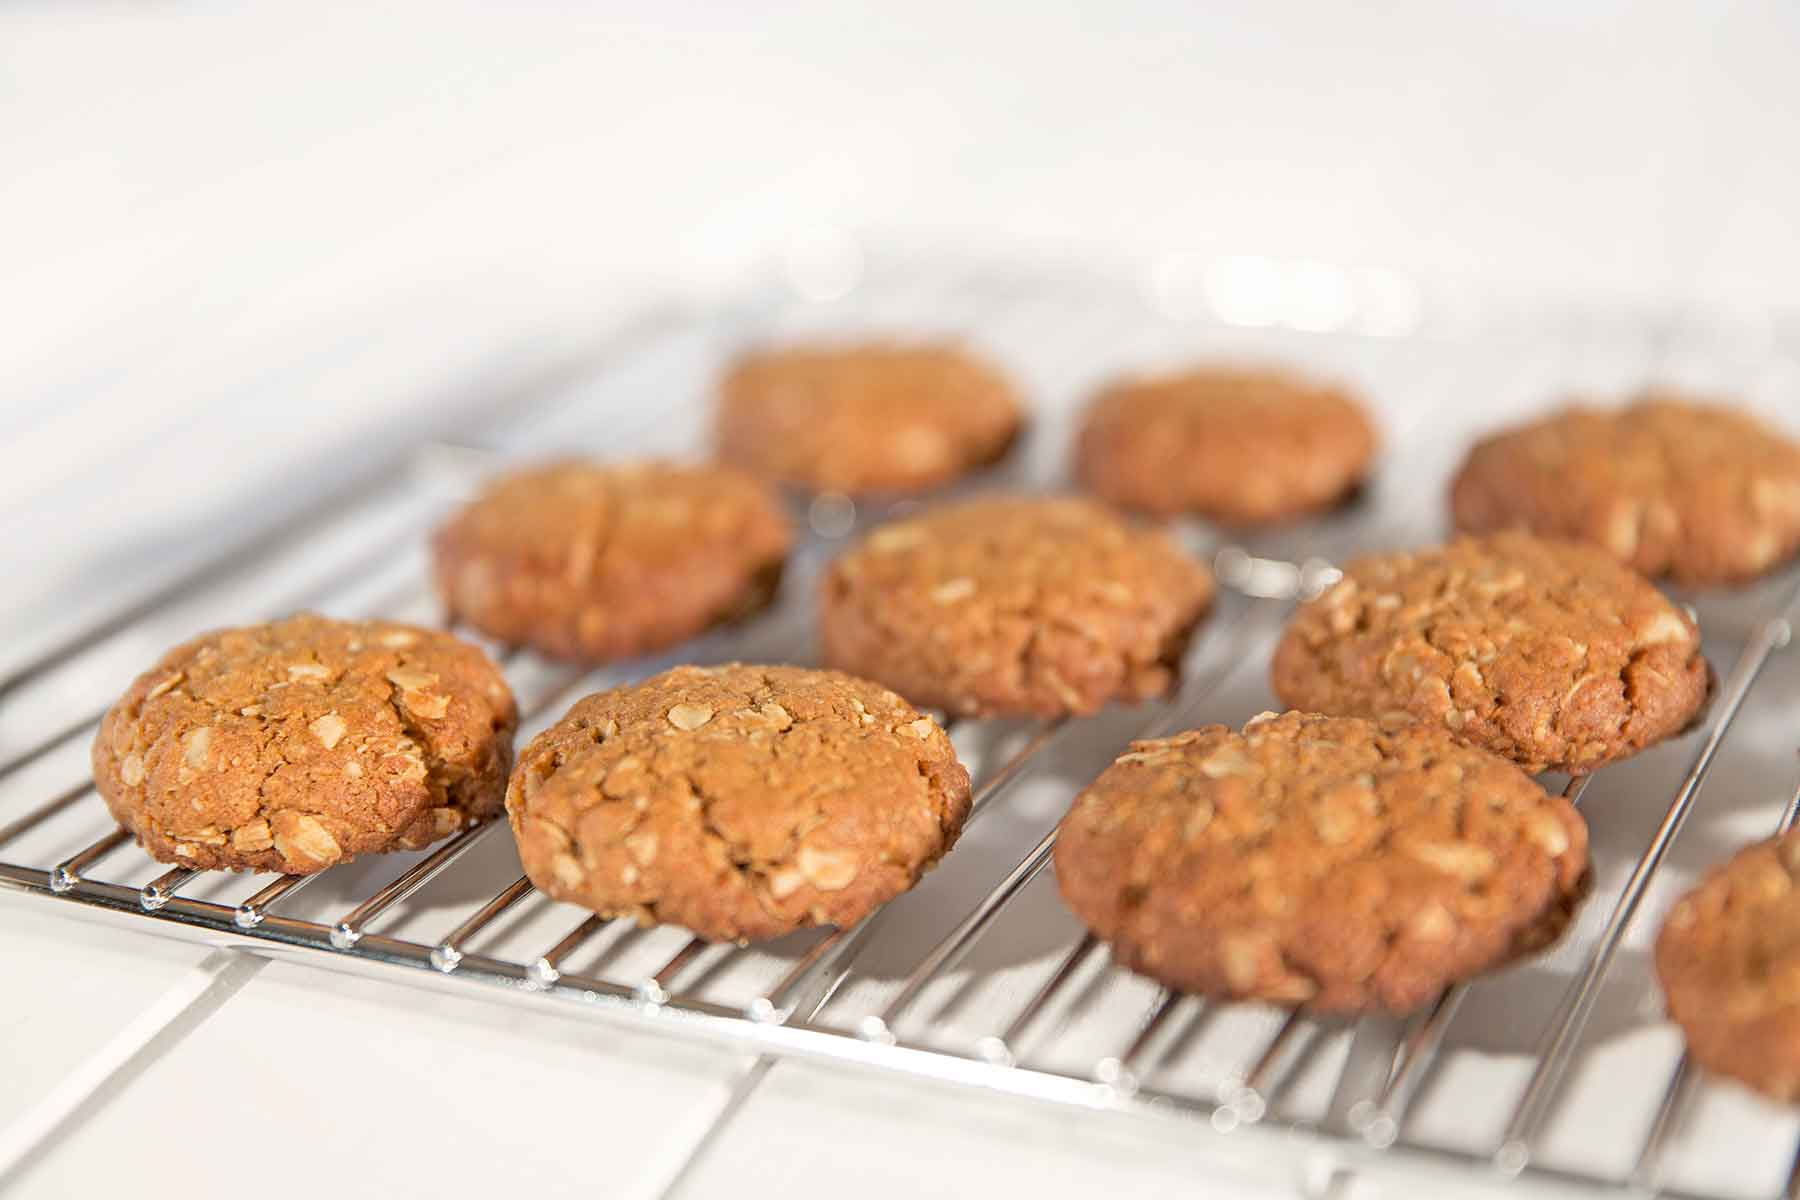 A tray of Organic Times Anzac biscuits